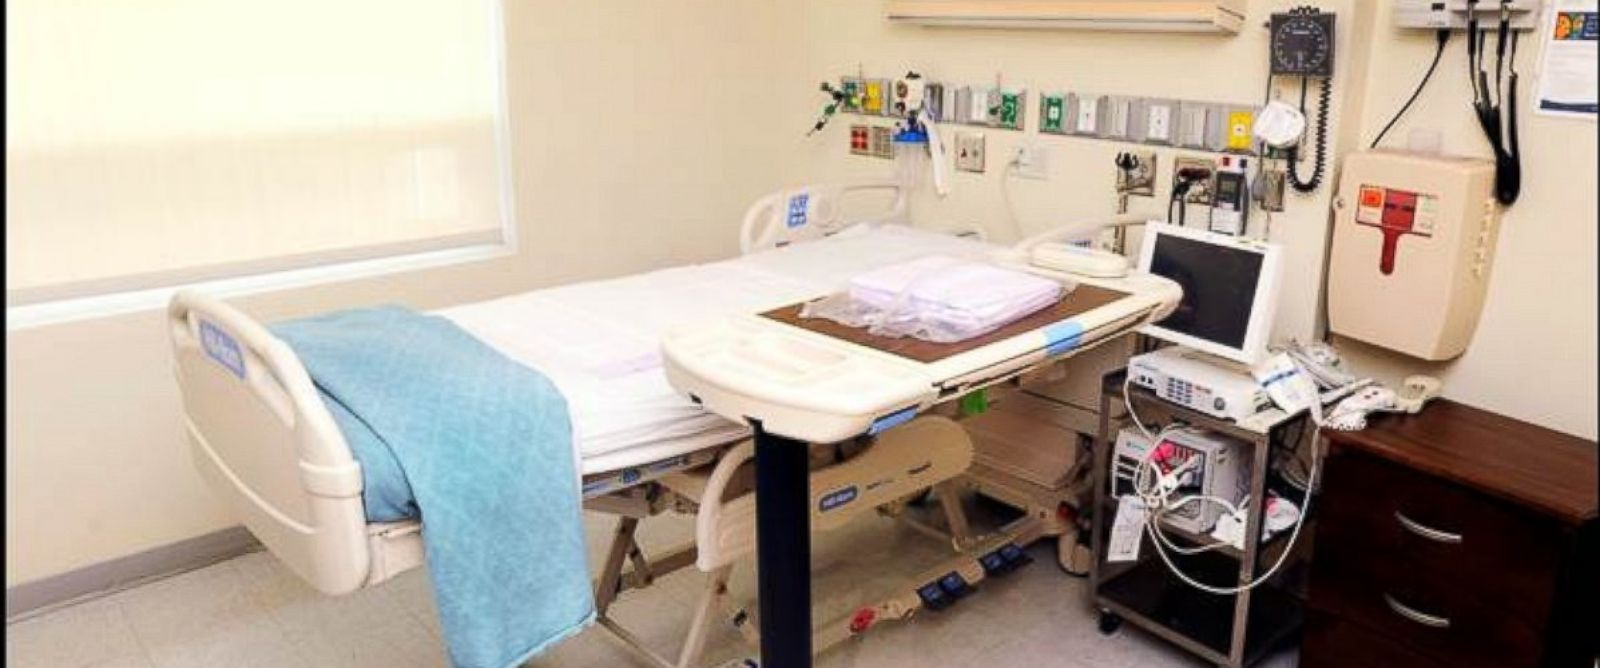 PHOTO: The Ebola-stricken Americans will be treated this isolation rooms and others similar to it.